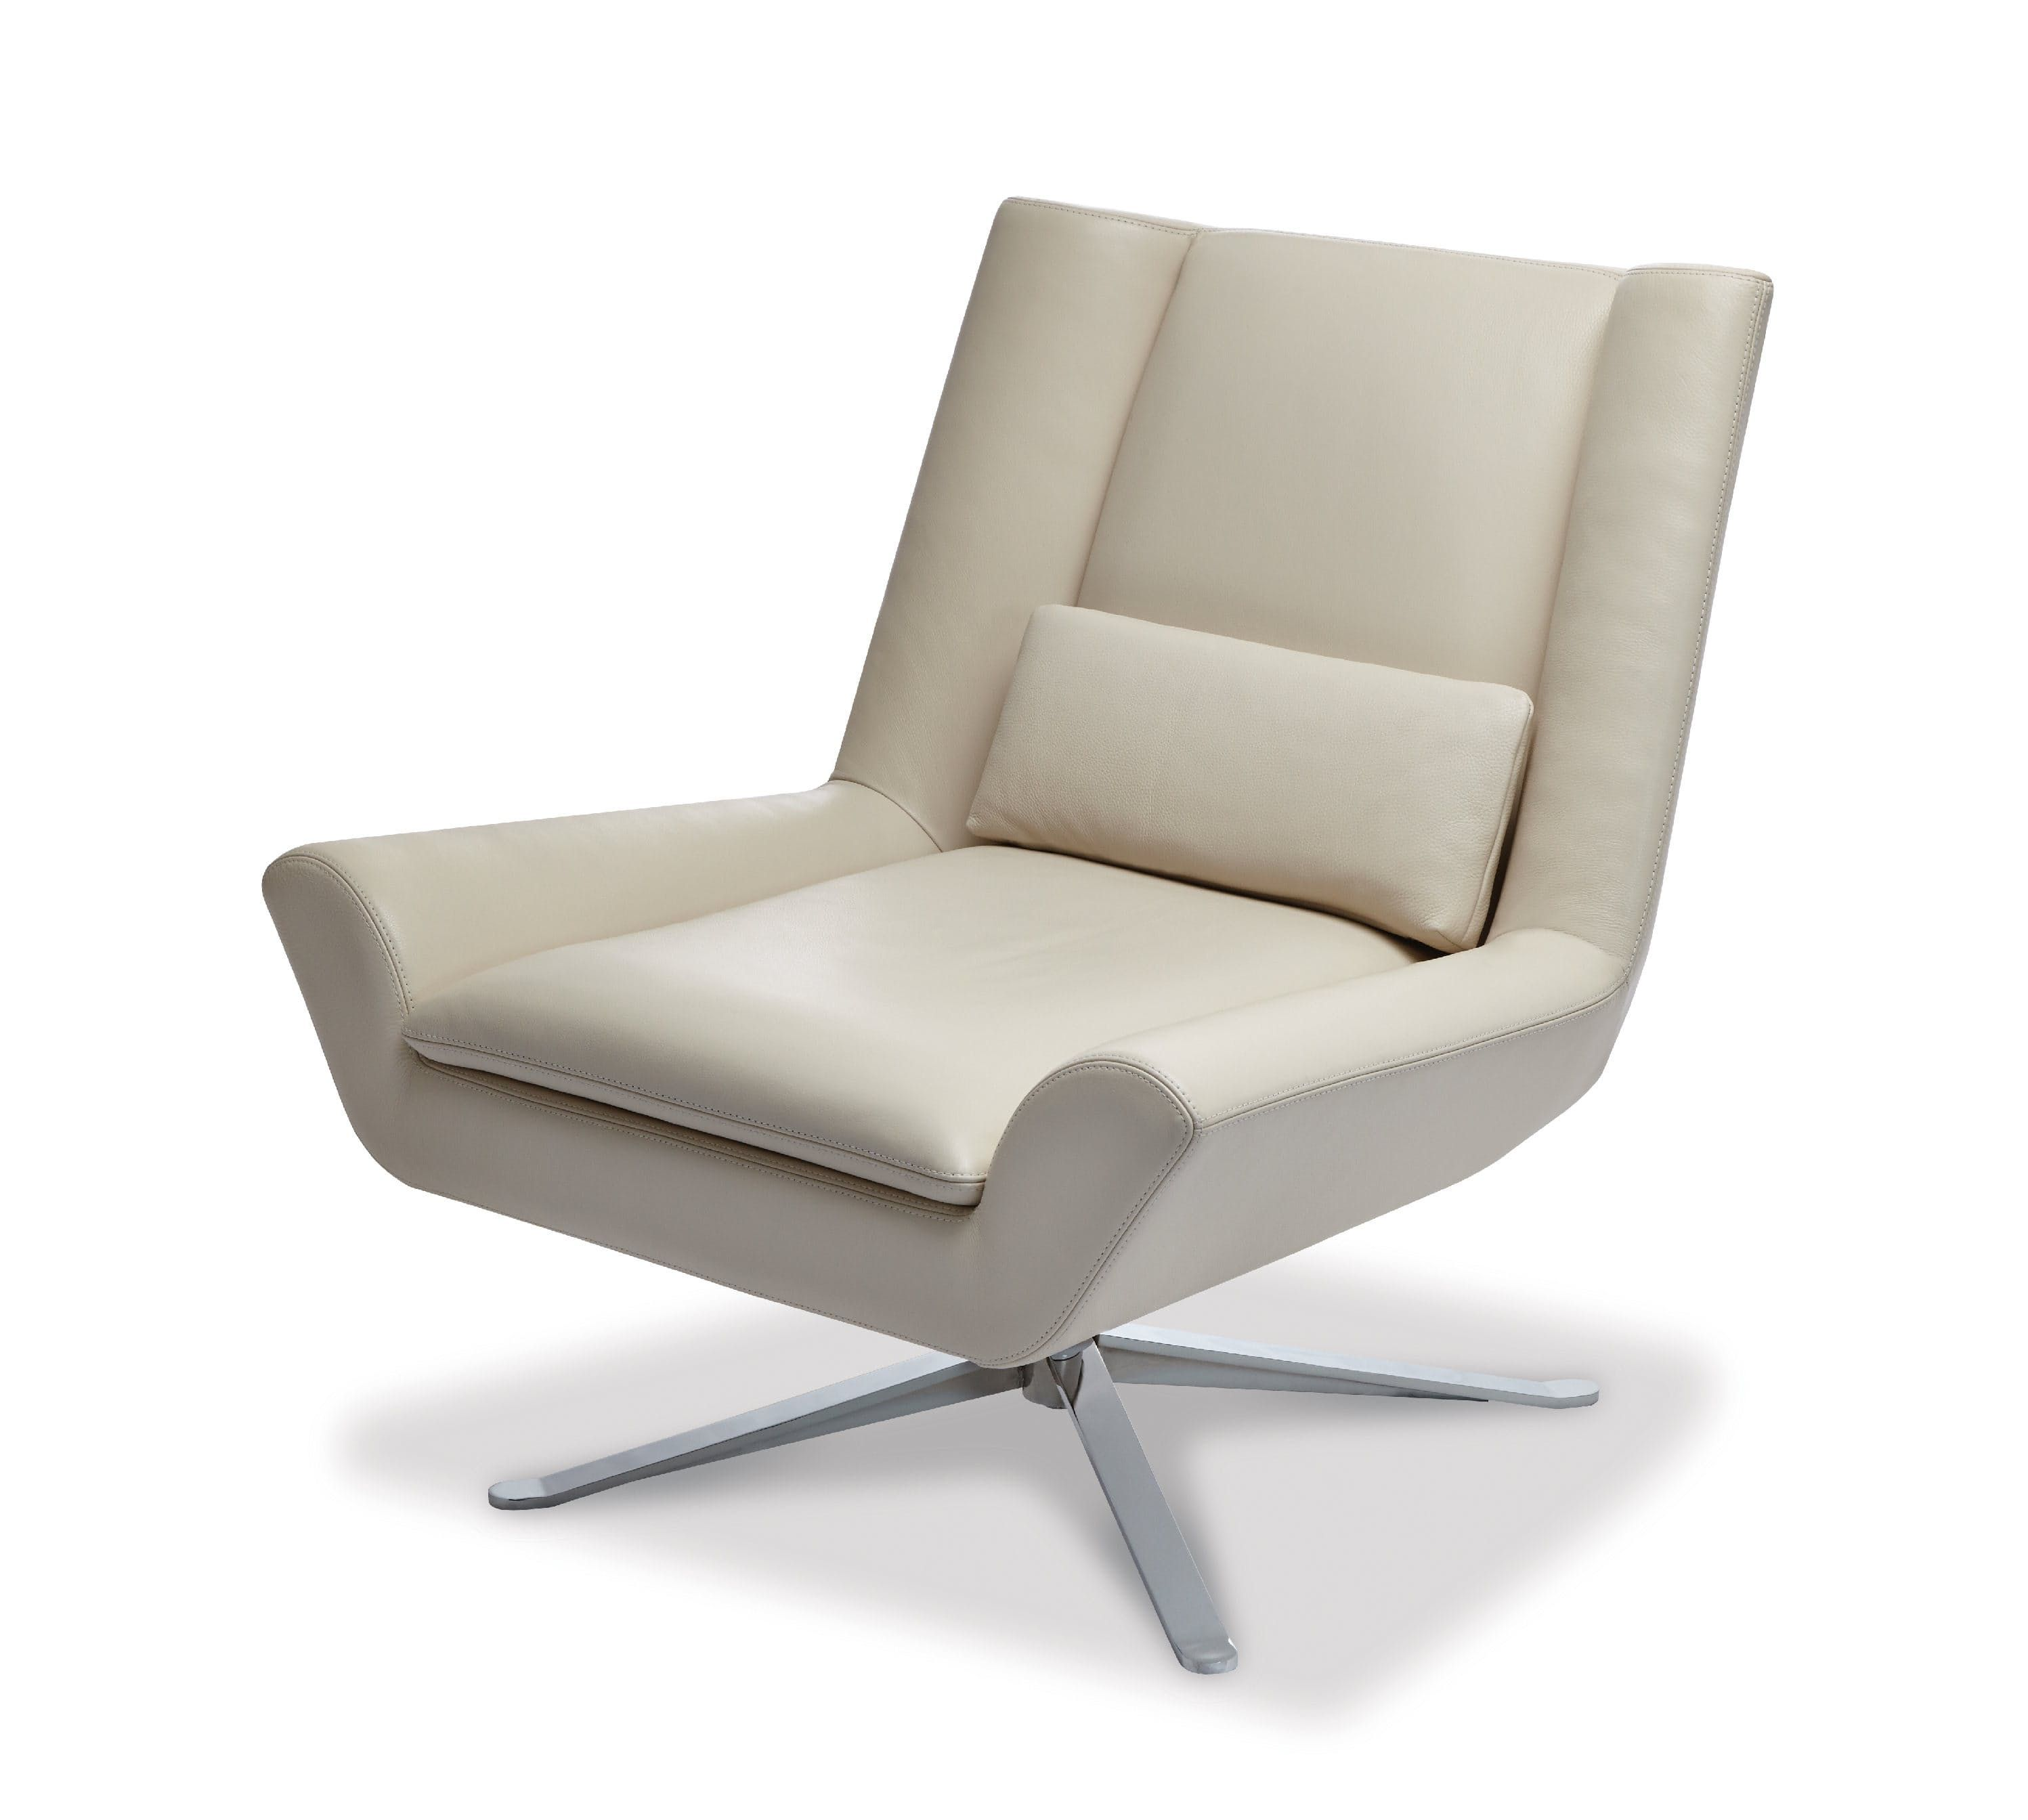 american leather swing chair seat cushions lke chr st from walter e smithe furniture design